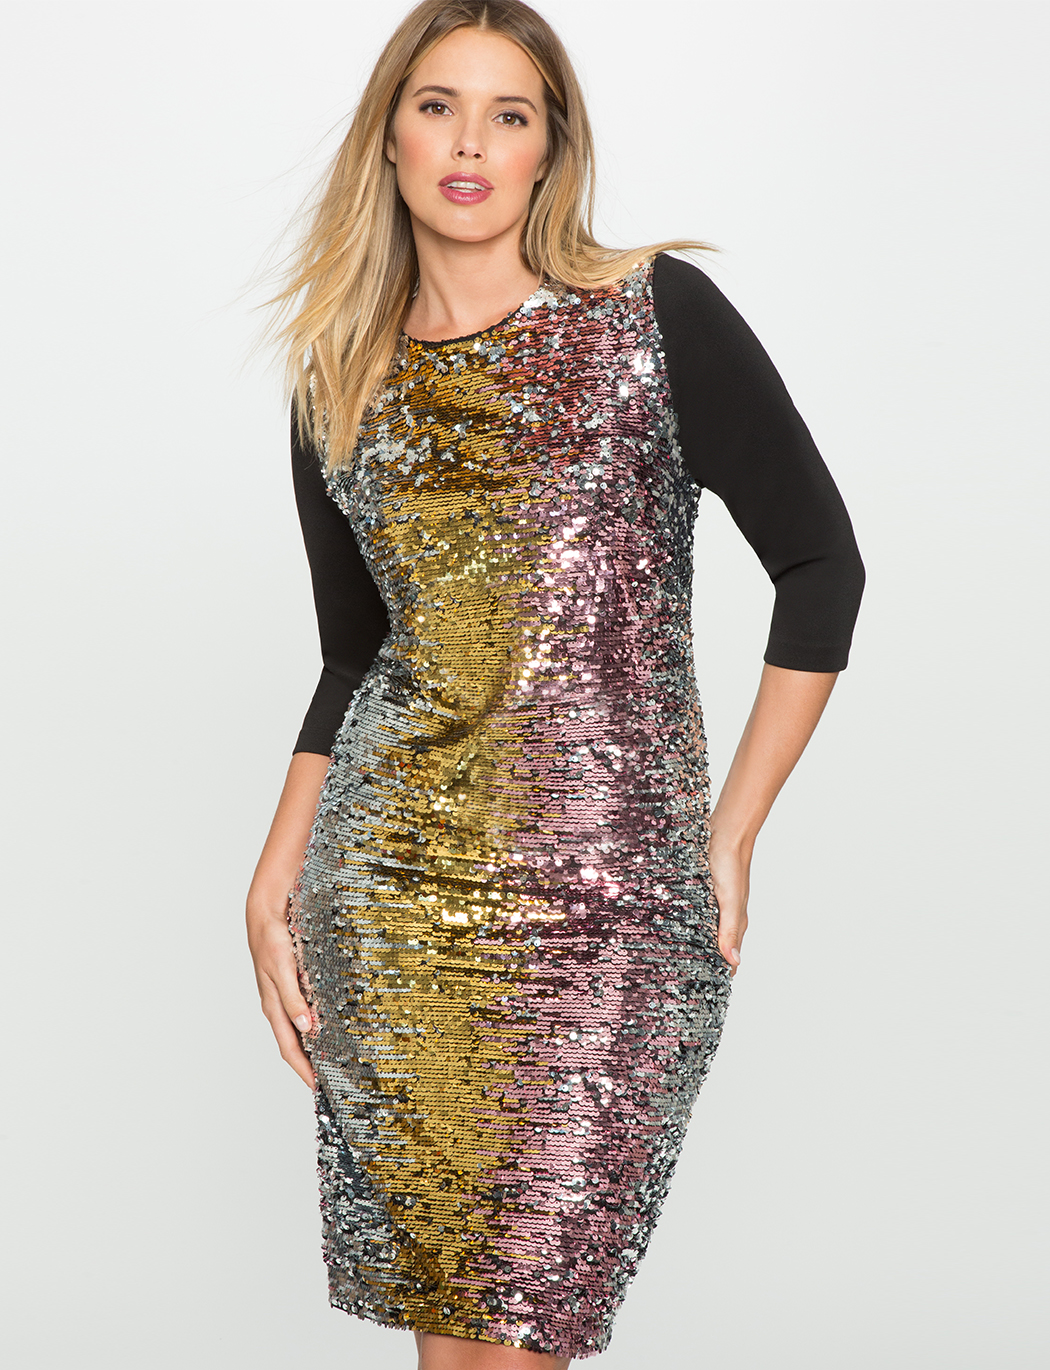 Eloquii New Years Eve Plus Size Dresses